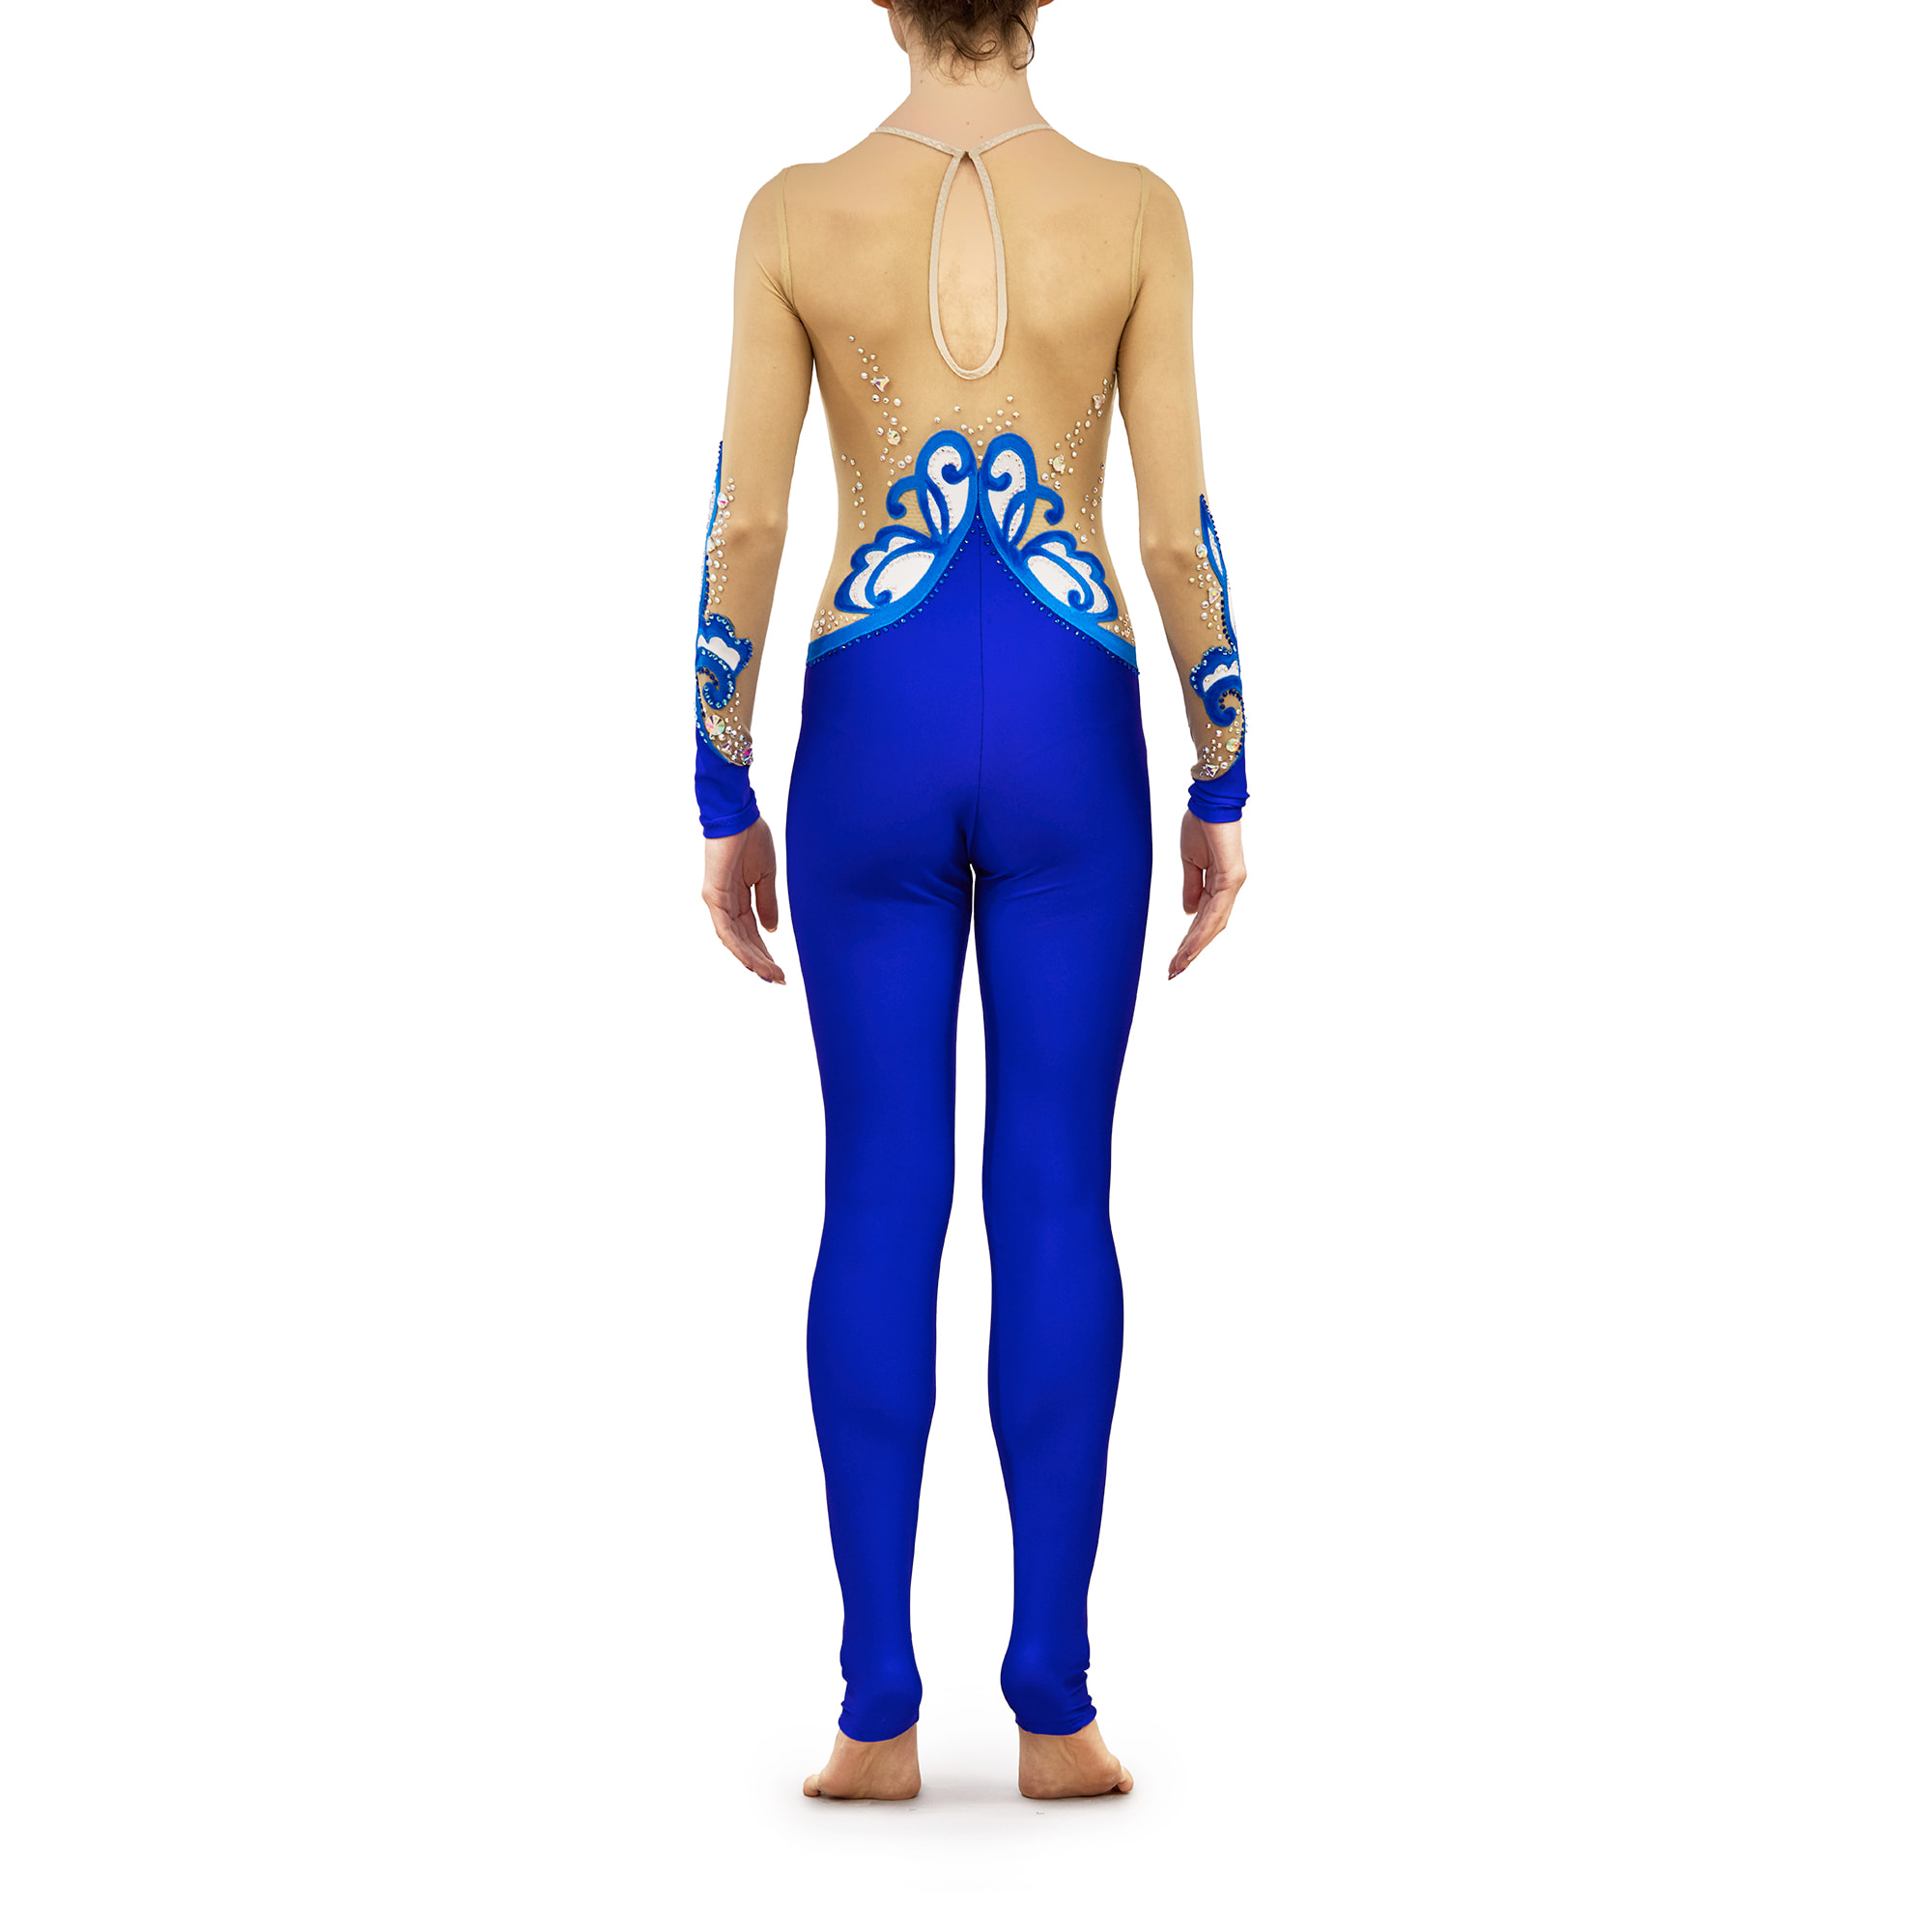 Royal blue, white Acrobatic Gymnastics Dress 244 with sleeves & without collar